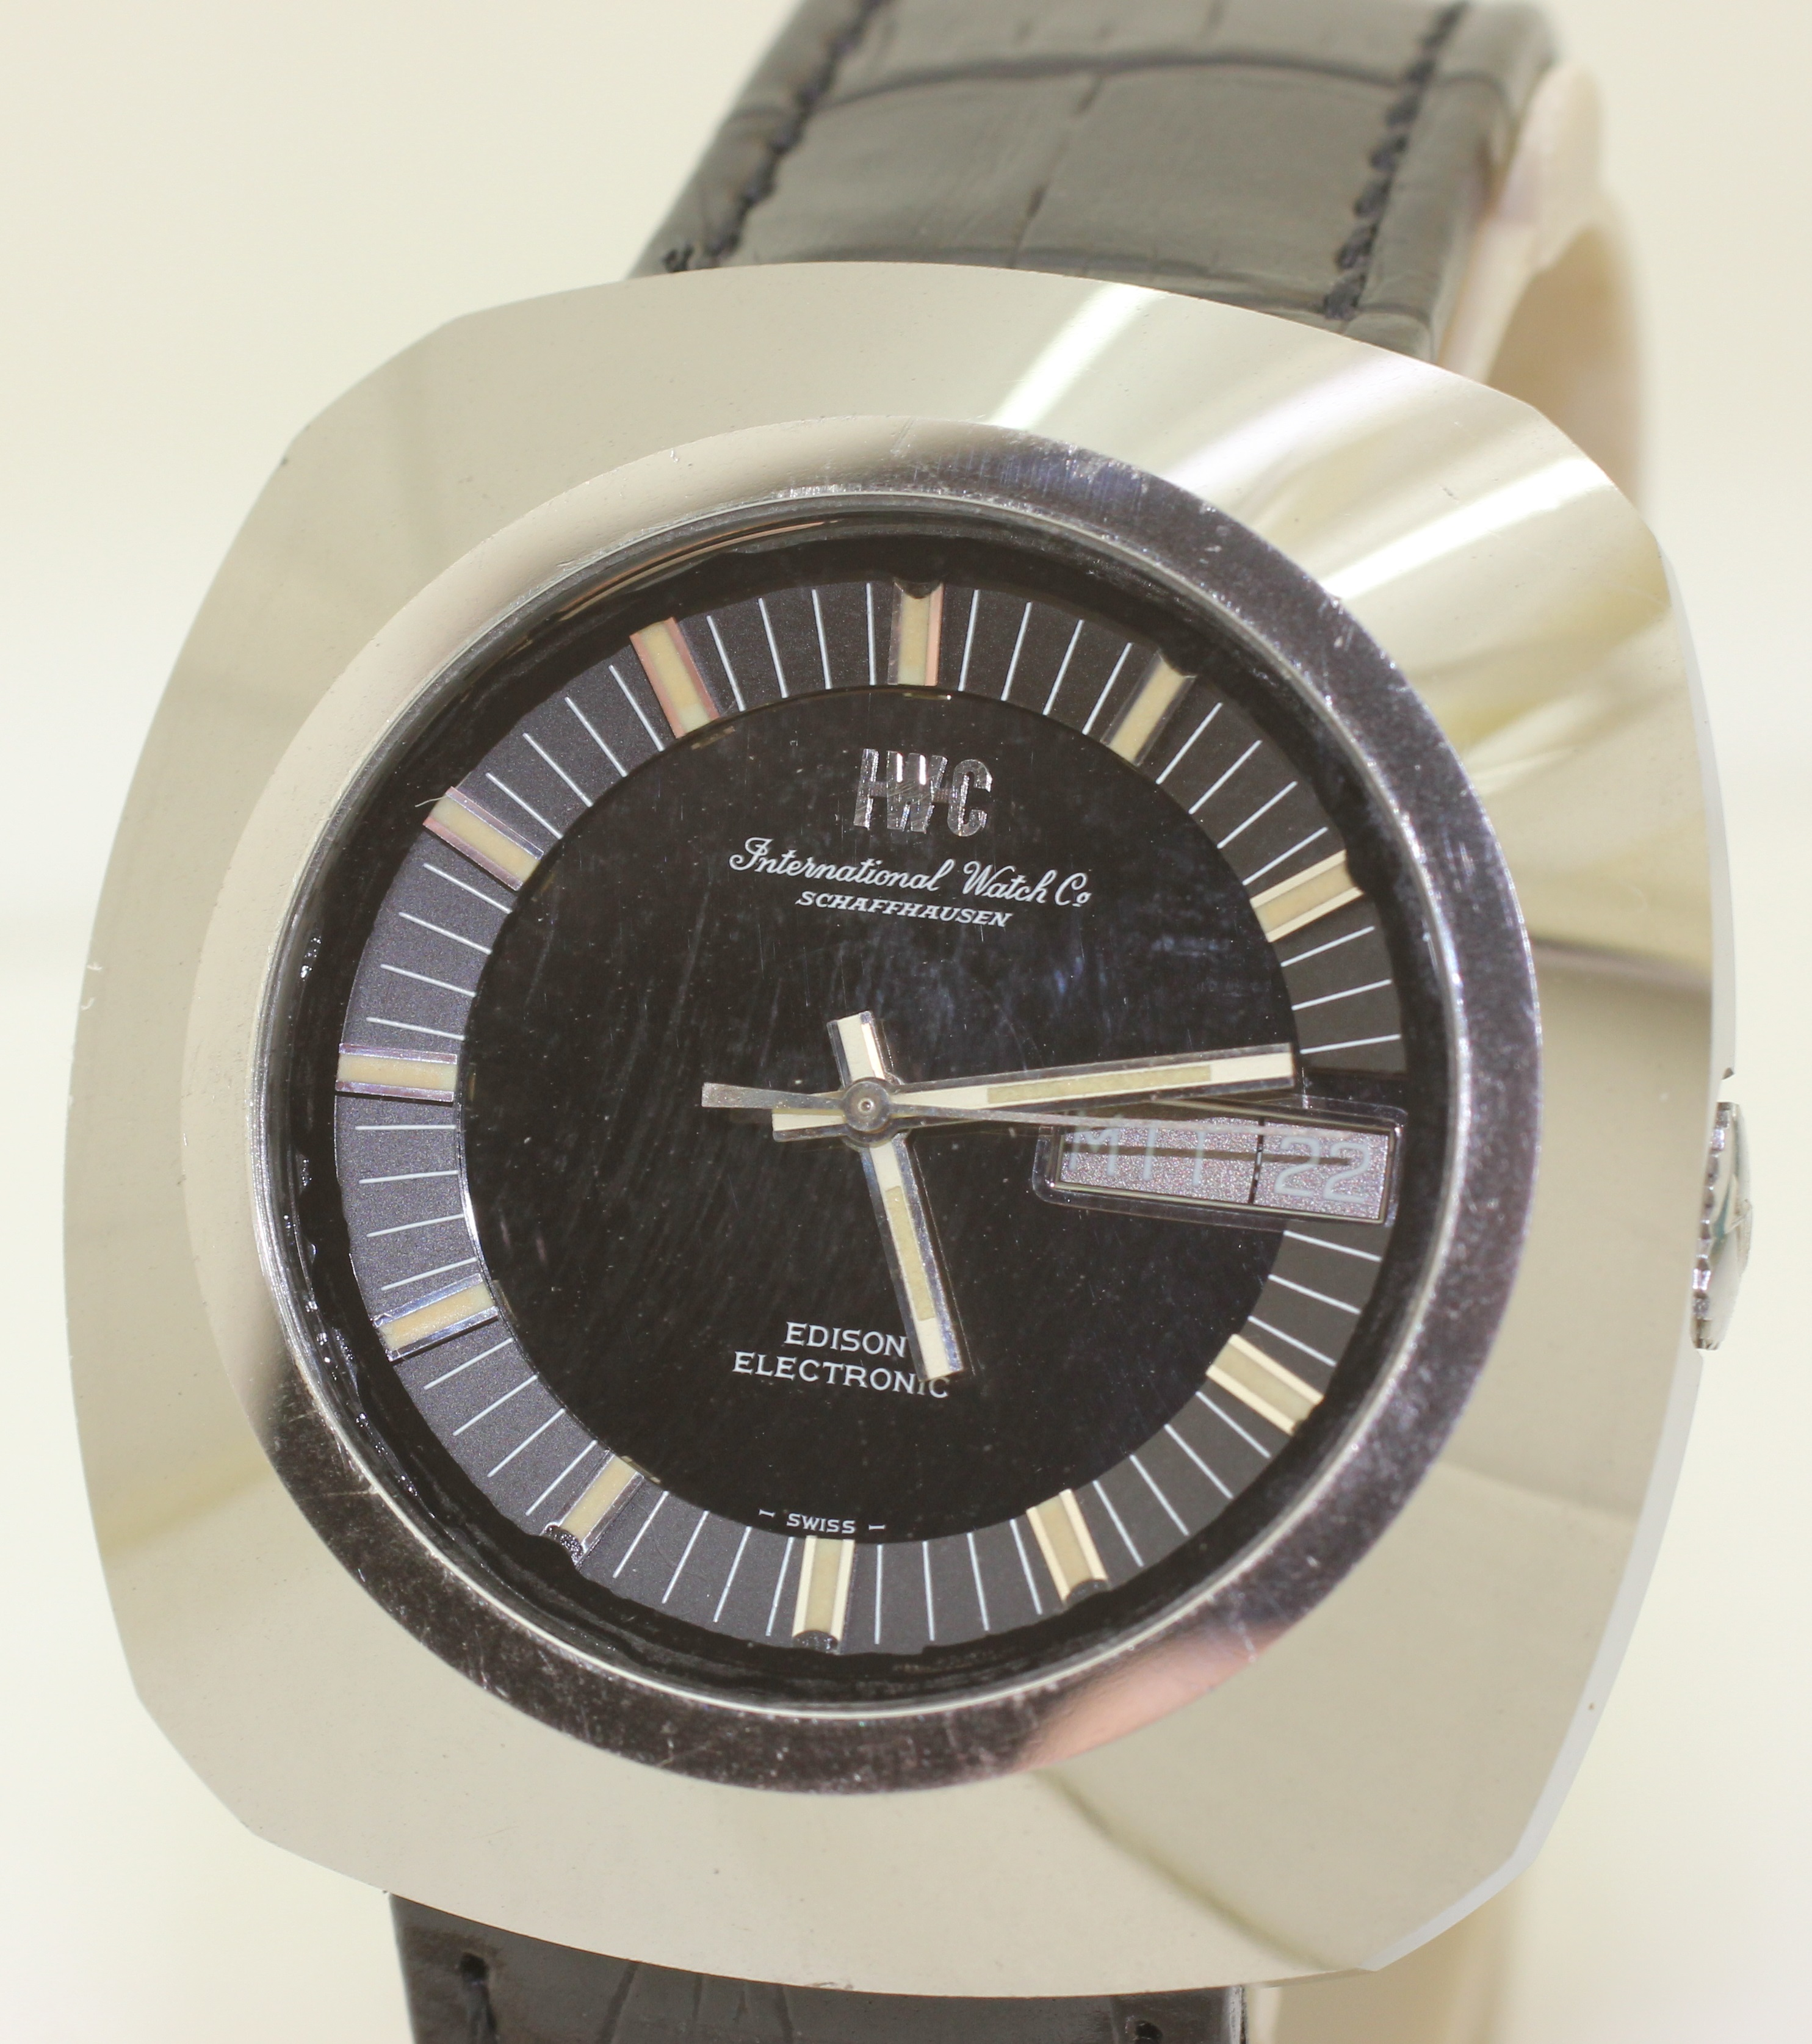 RARE 1970's Stainless Steel IWC Edison Electronic Cal. 160